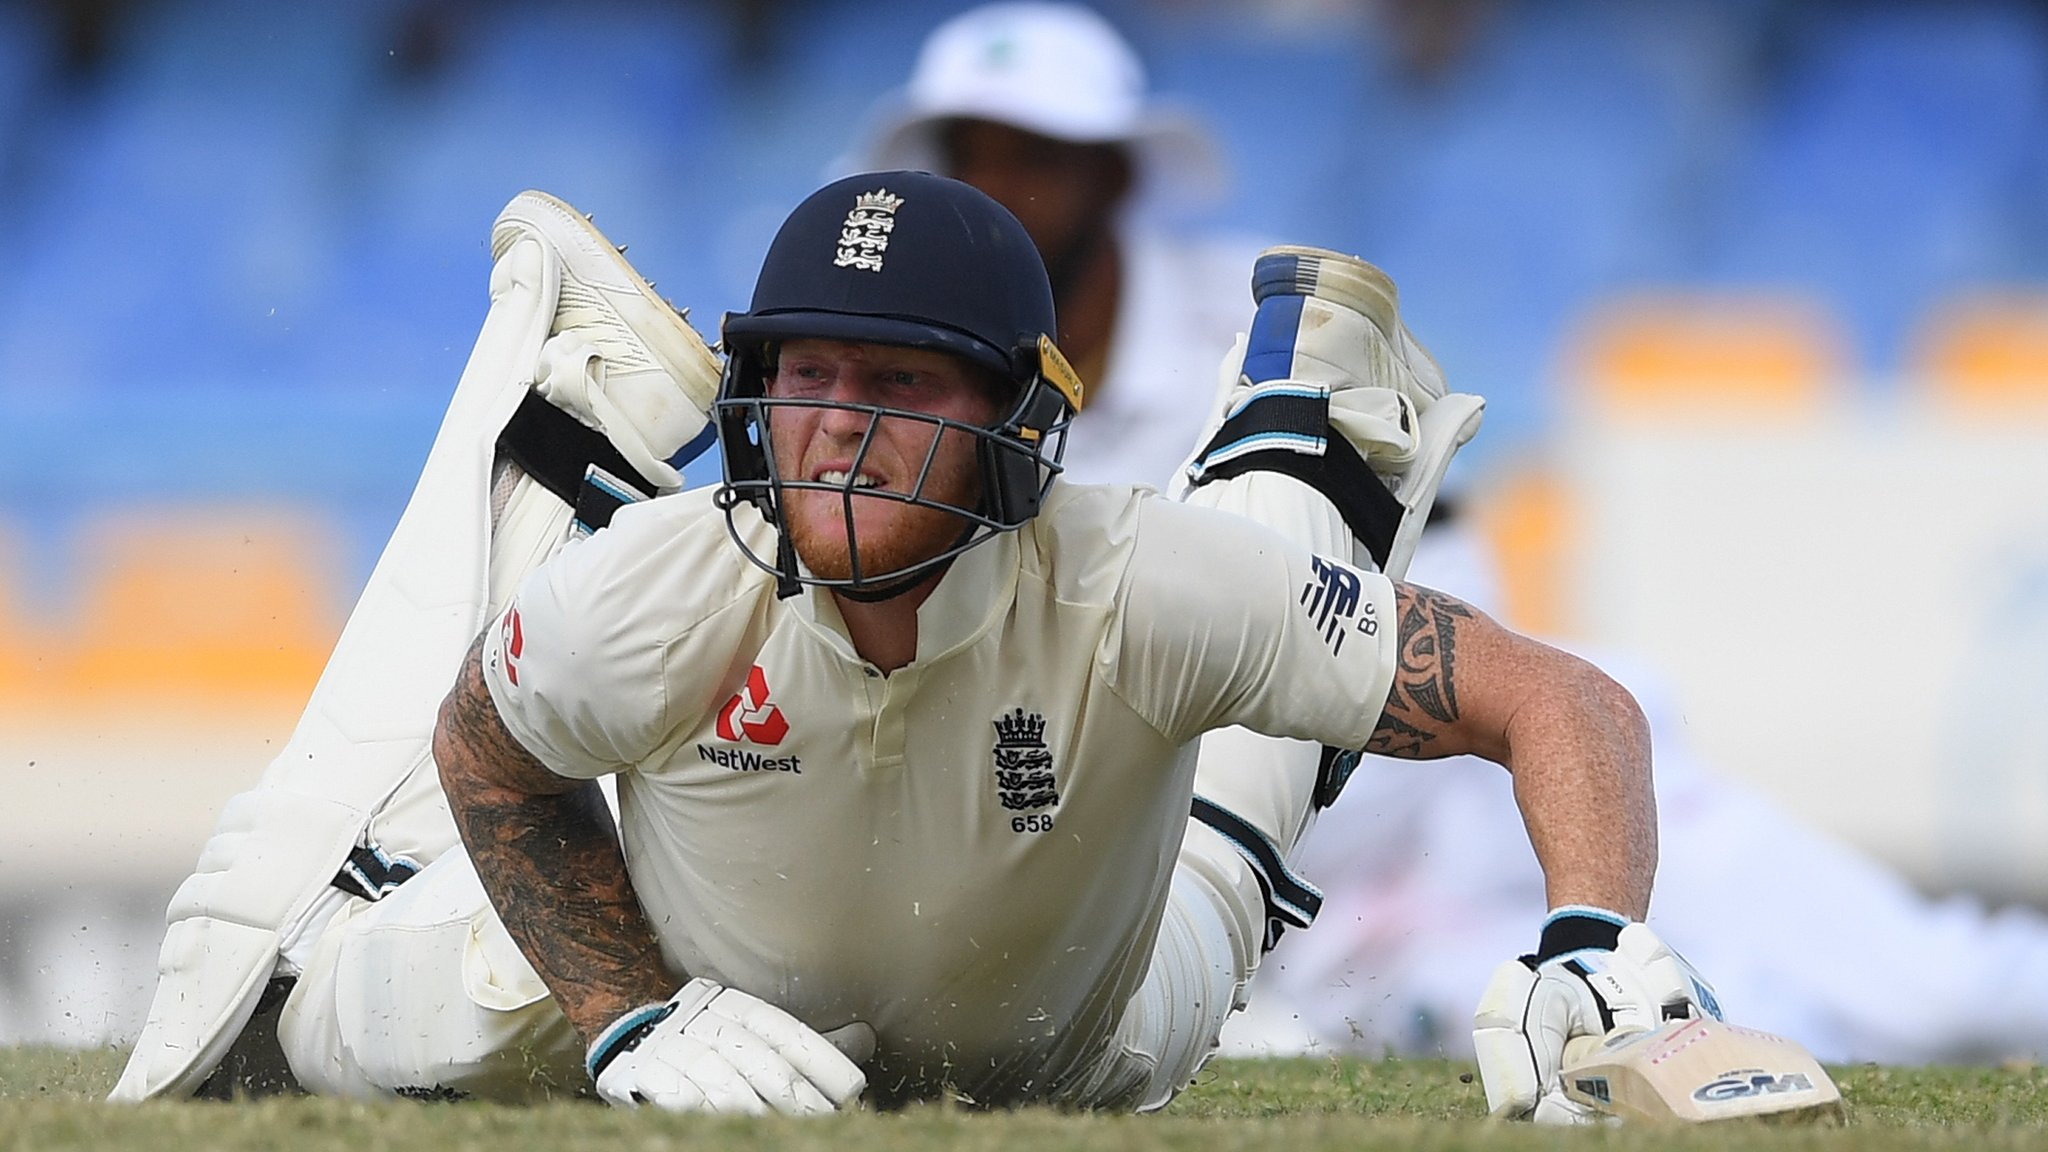 Two Tests until the Ashes - how worried should fans be about England?